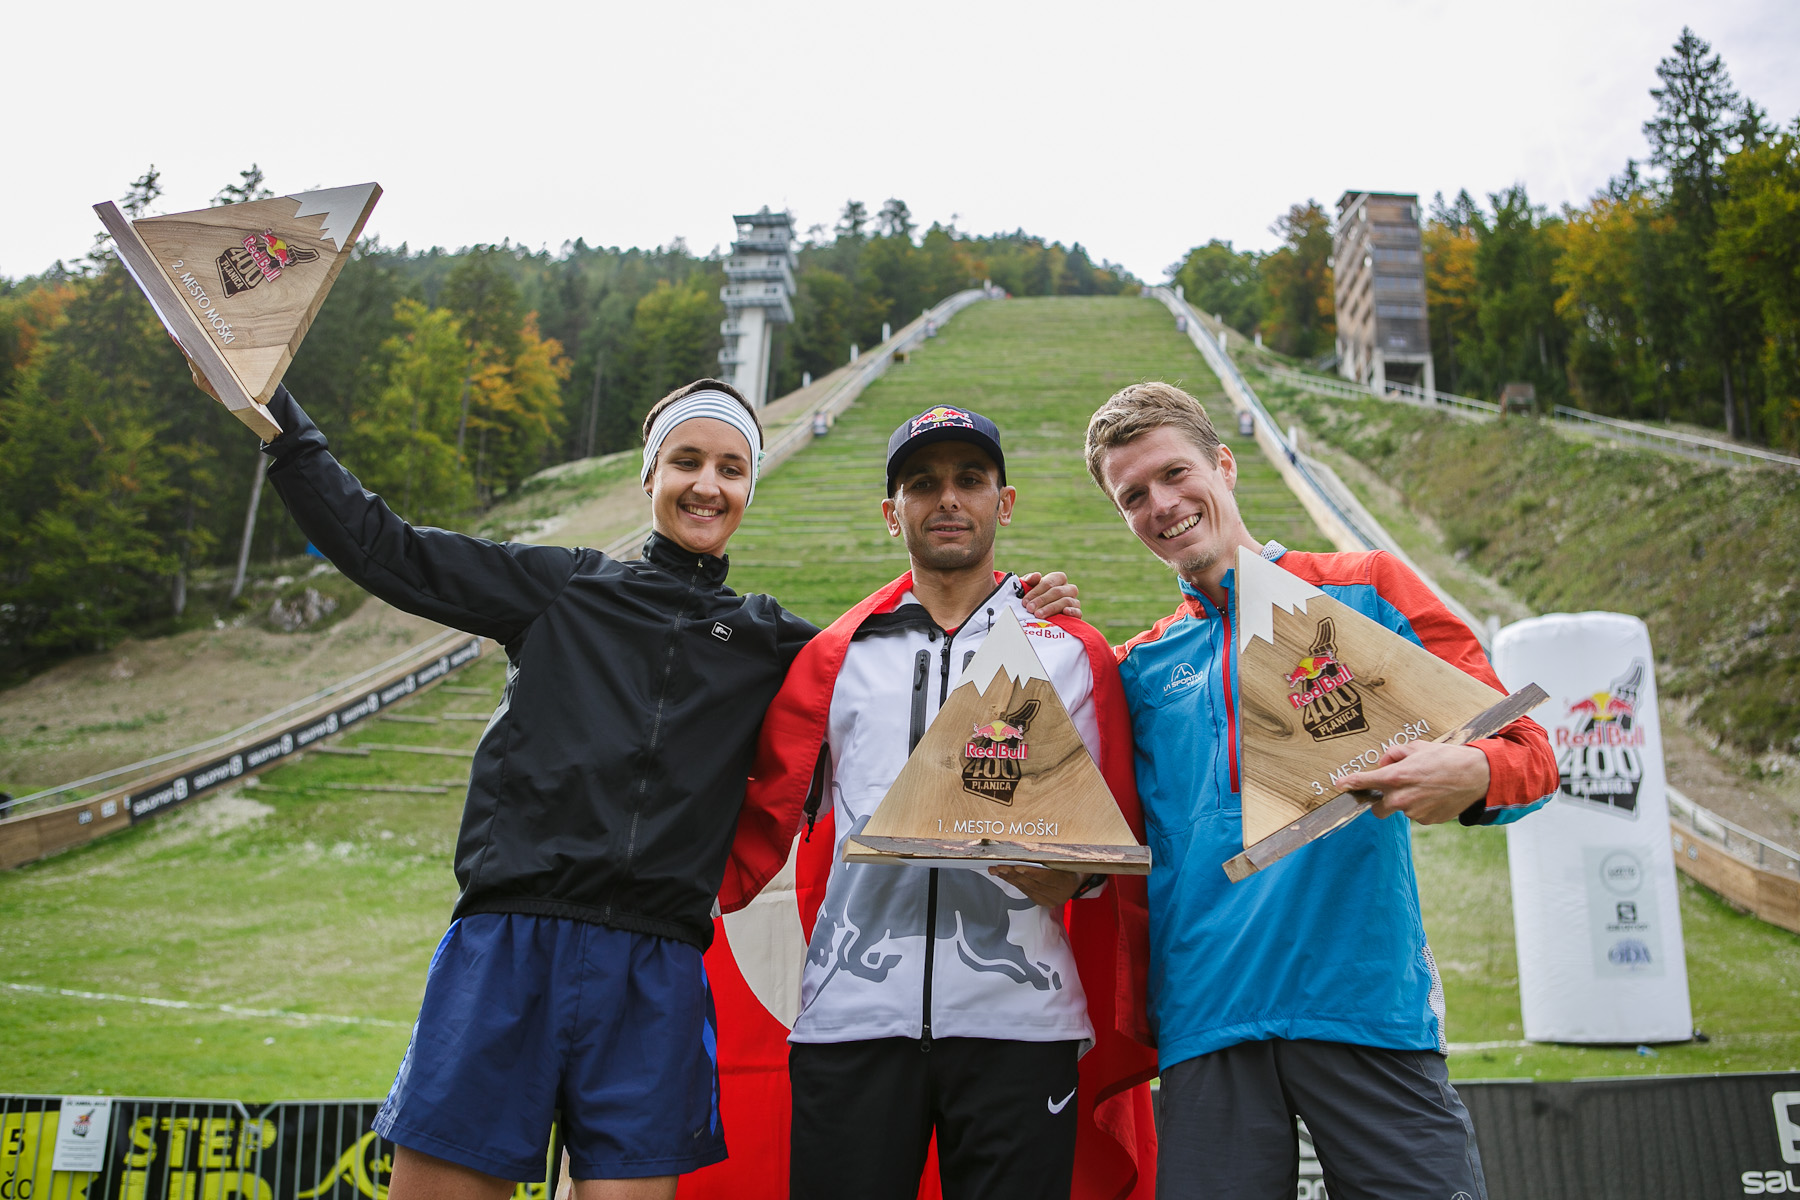 (L-R) Winners in the men competition: second placed Luka Kovacic (SLO), winner Ahmet Arslan (TUR) and third placed Nejc Kuhar (SLO) on the winners podium after the Red Bull 400 race in Planica, Slovenia, Sep. 19, 2015.